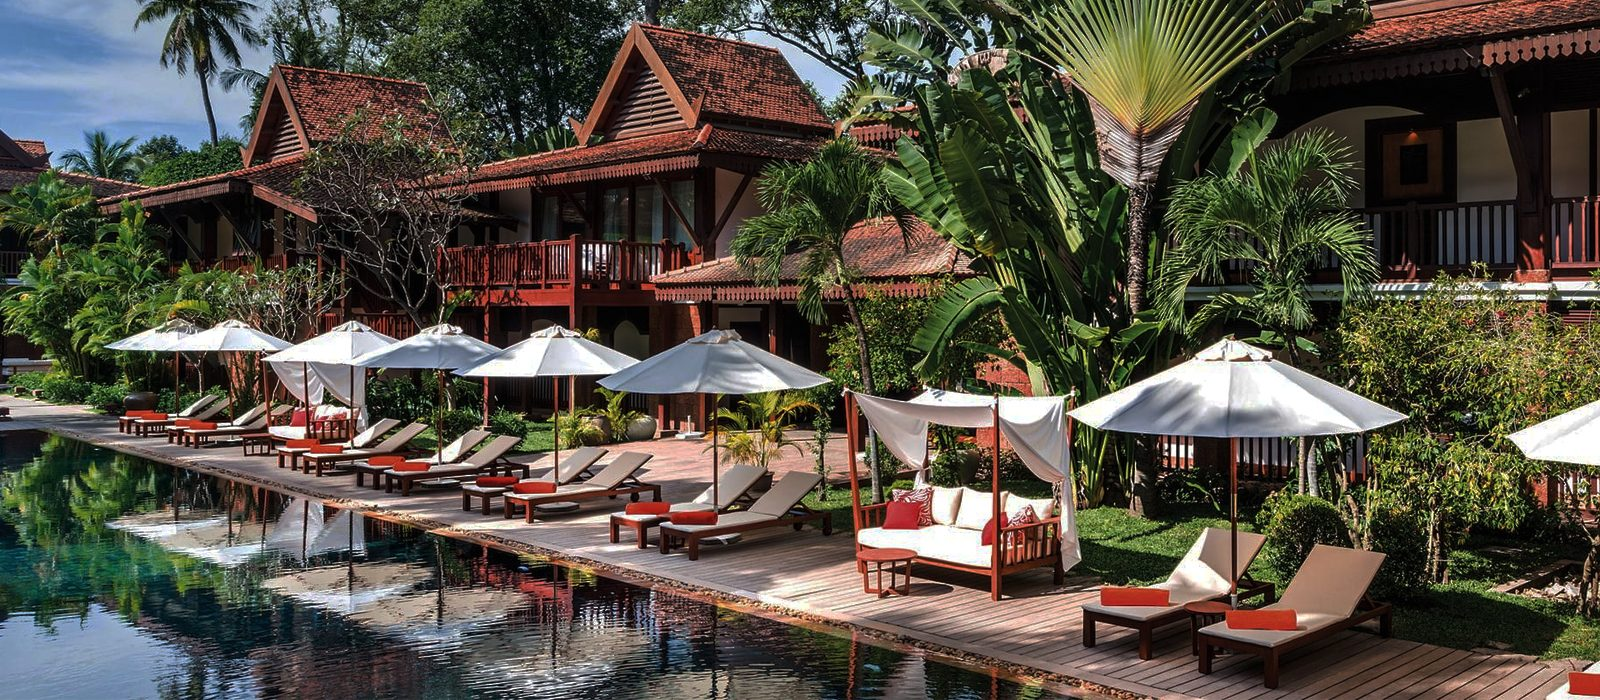 Luxury Cambodia Holiday Packages Belmond La Residence Dangkor Header